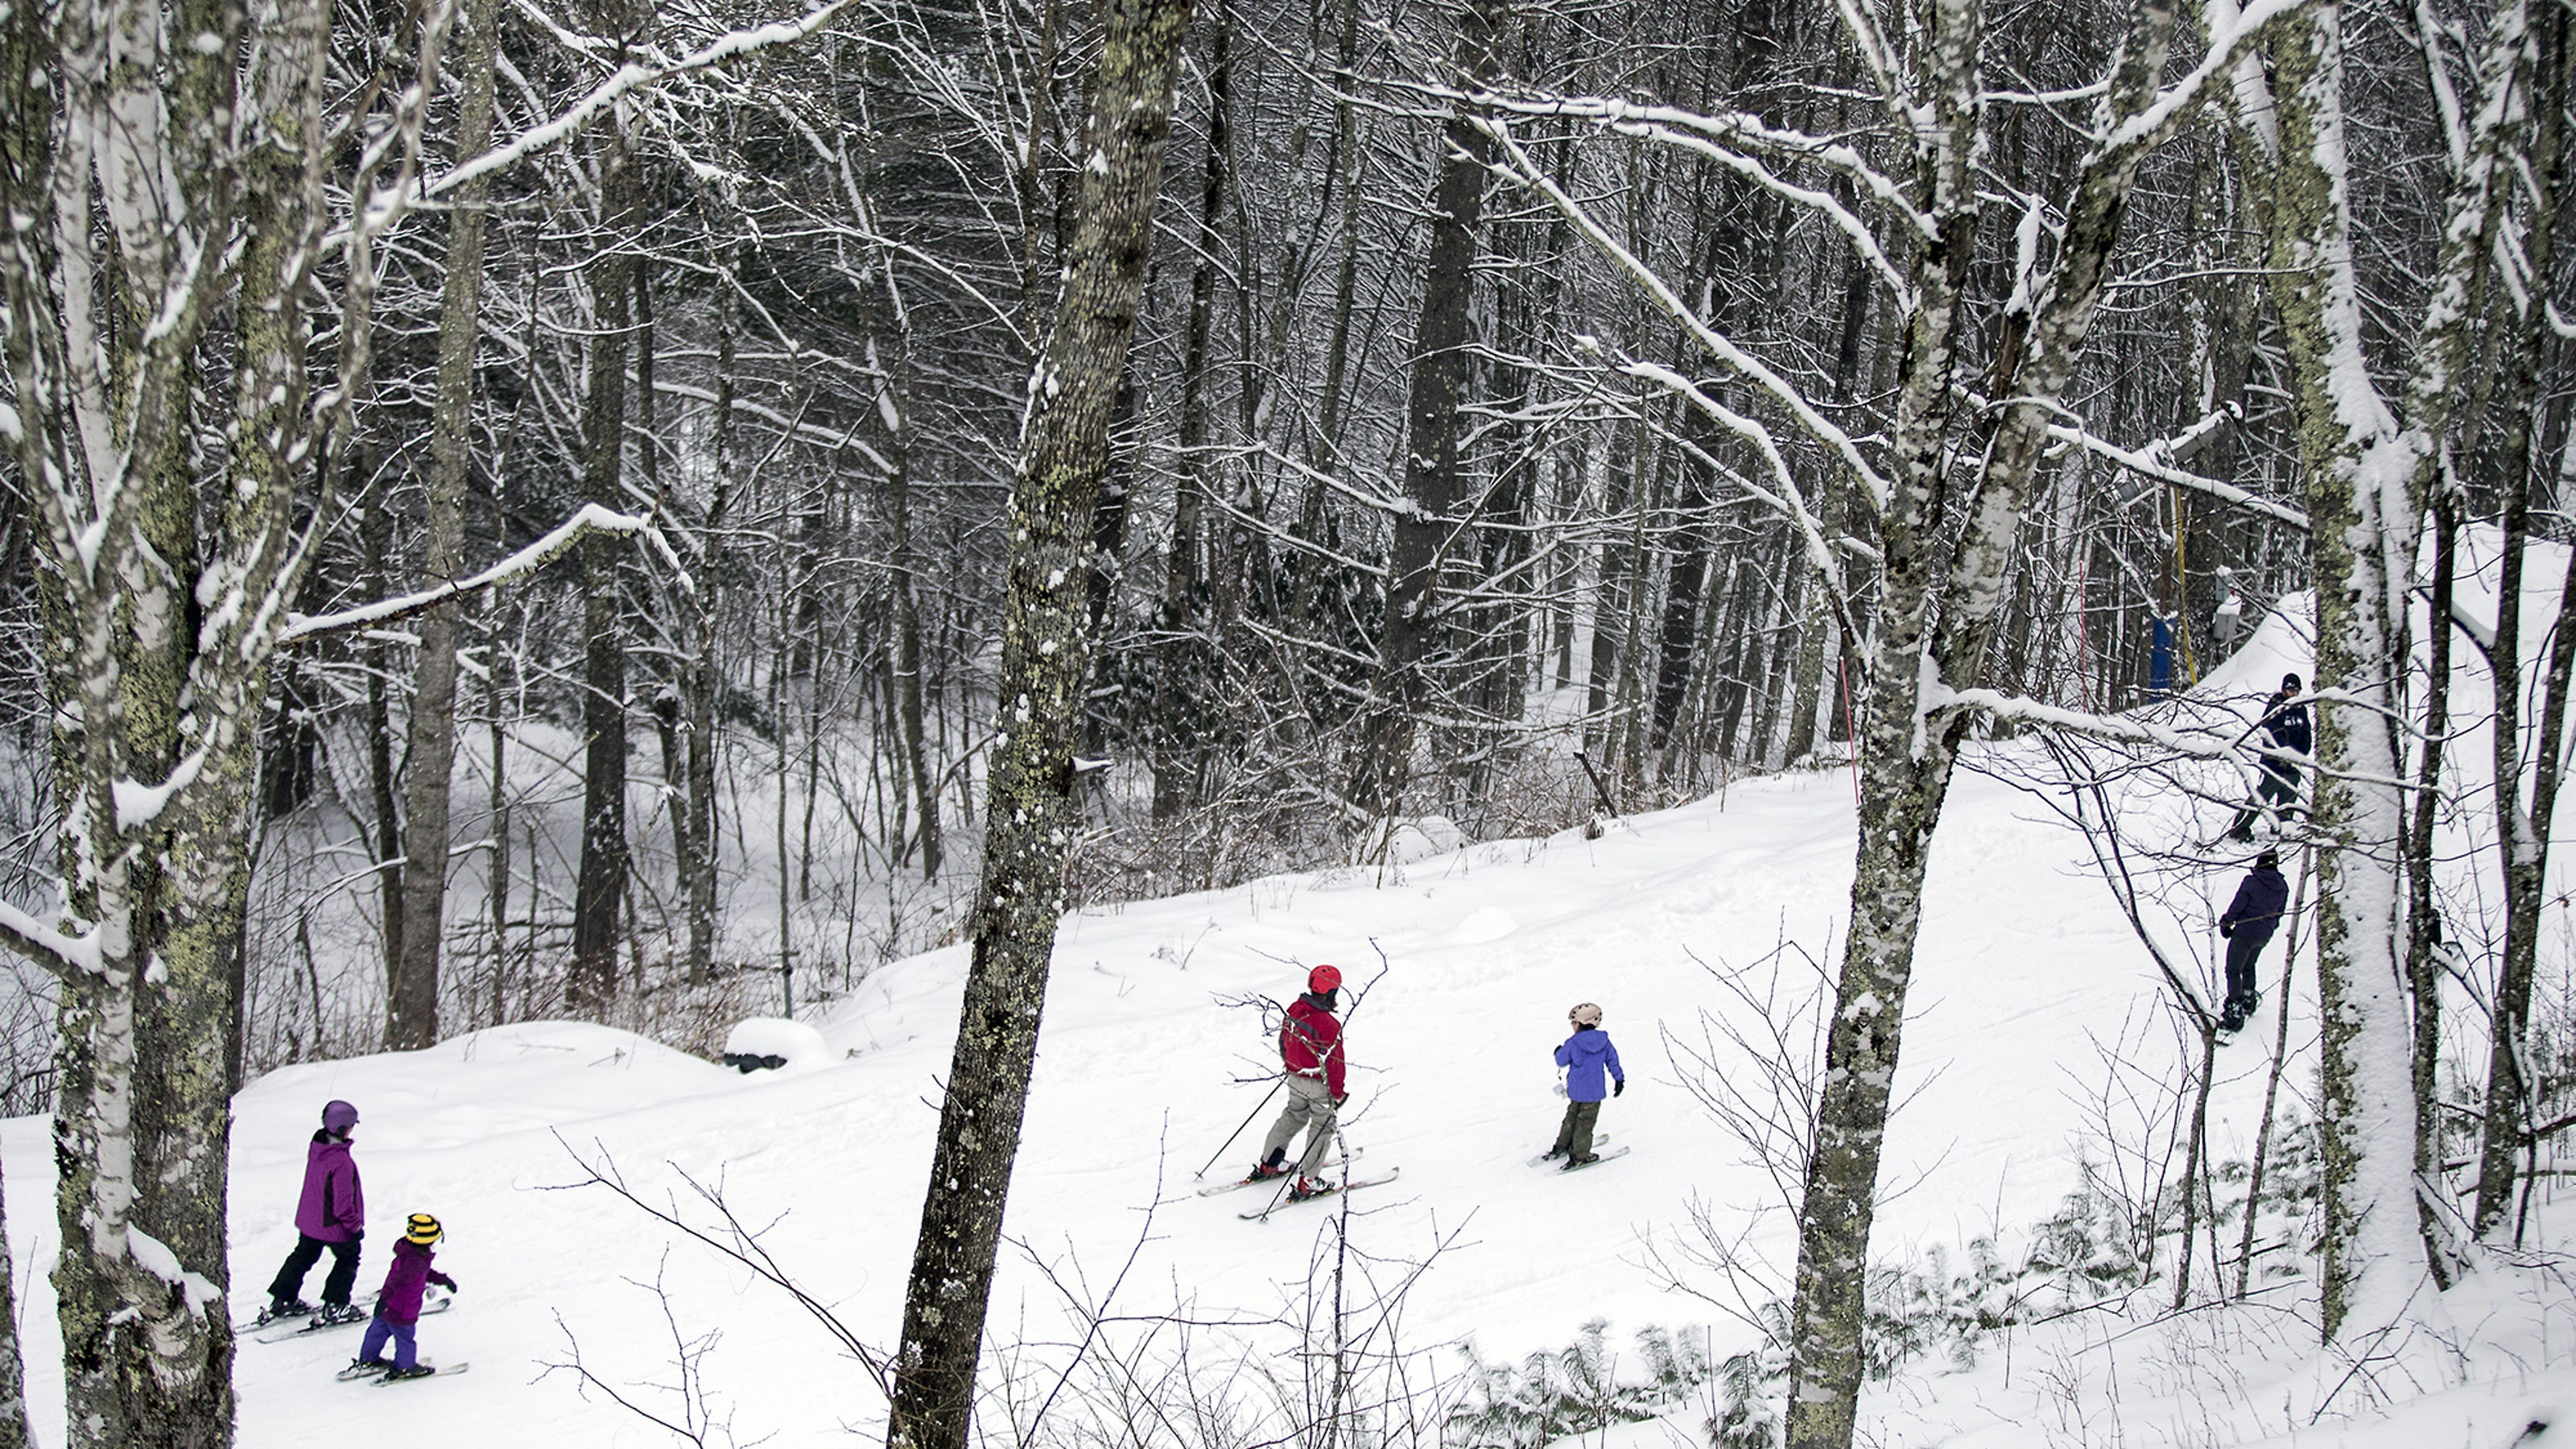 cold snow season was 'hot' for wnc ski areas